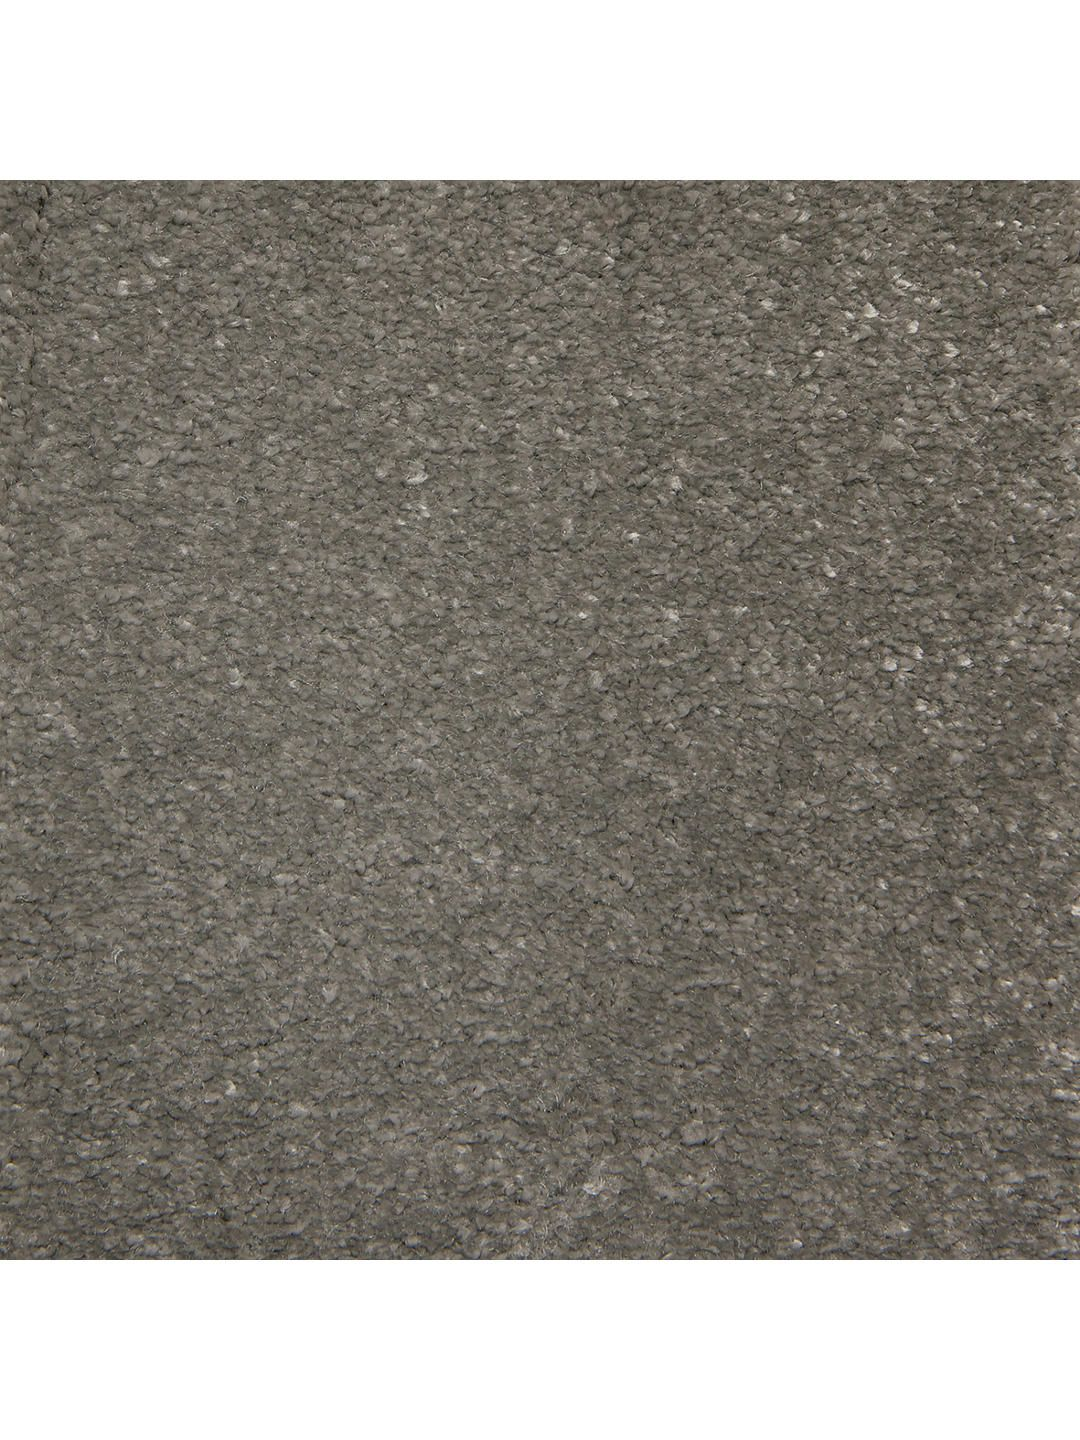 John Lewis Partners Tranquility Synthetic Twist Carpet Hudson Grey Cost Of Carpet Carpet Fitting Tranquility